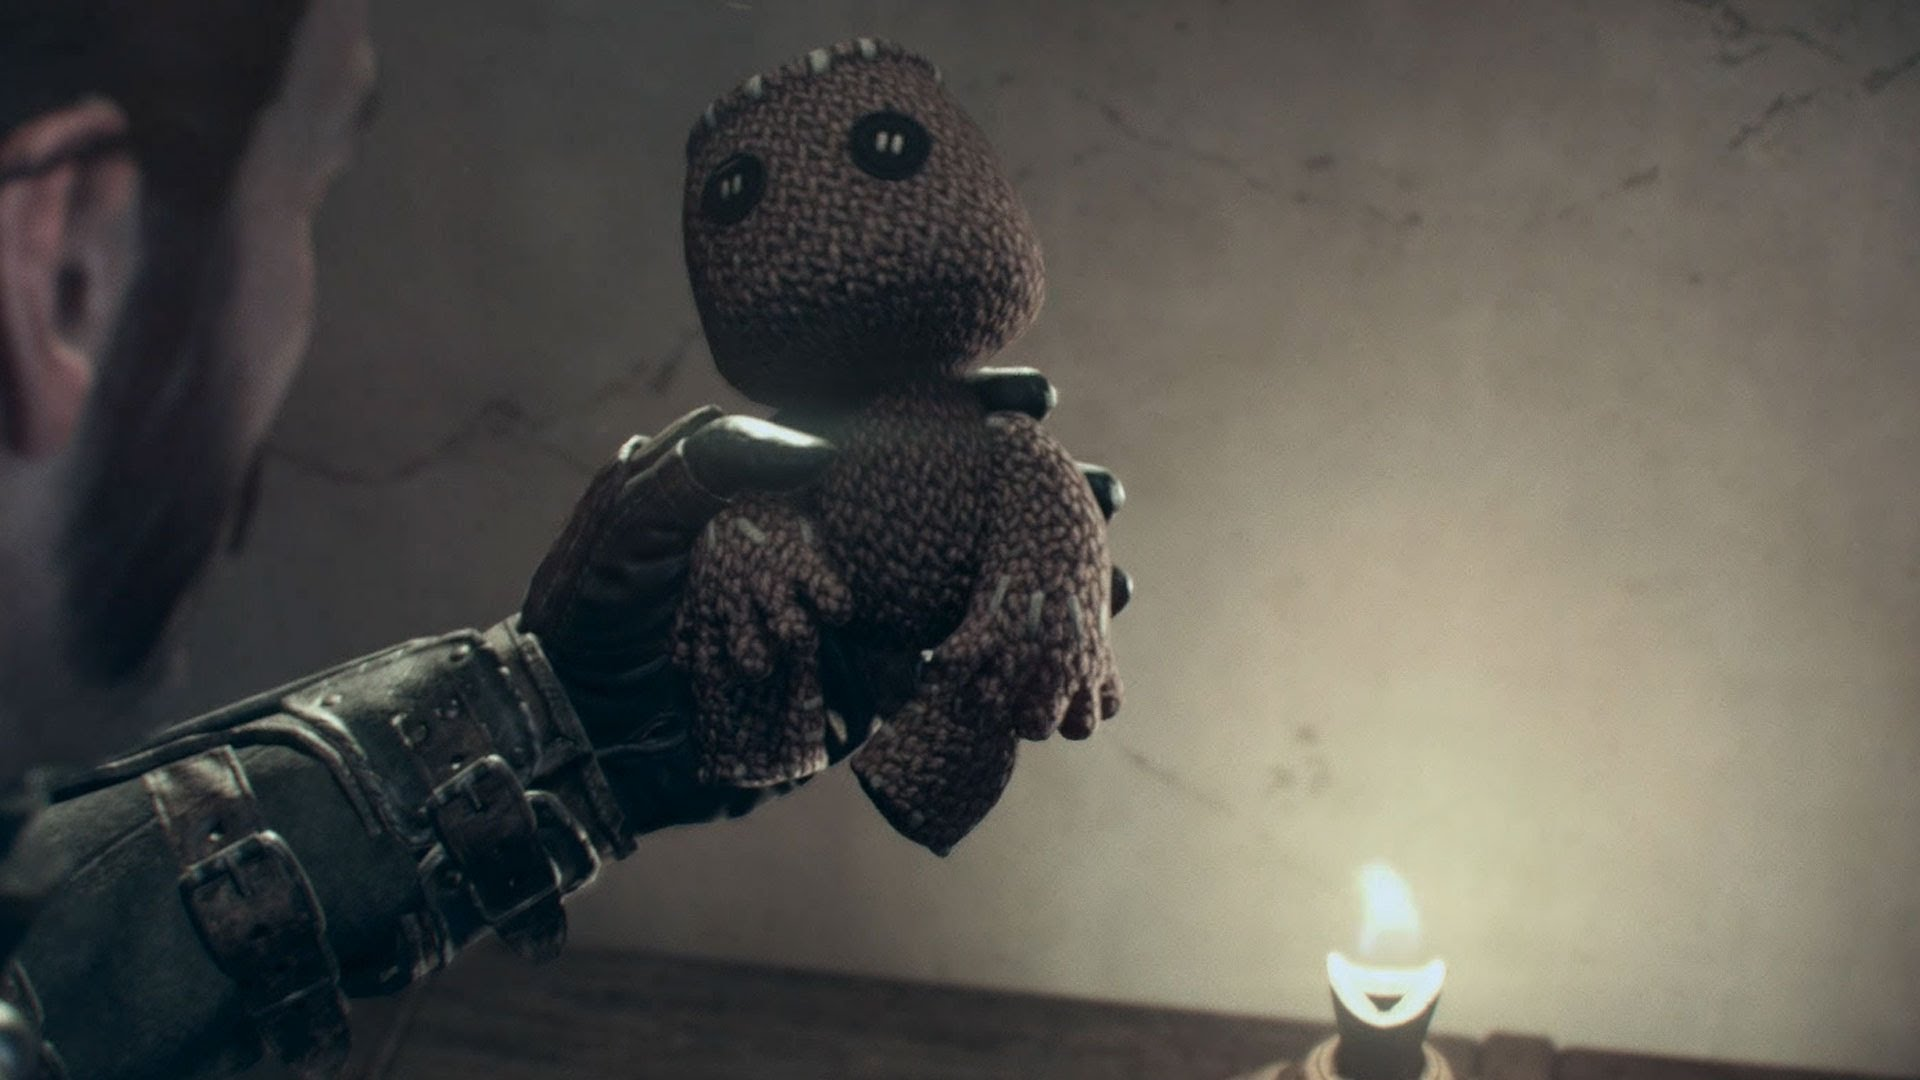 Little big planet puppet